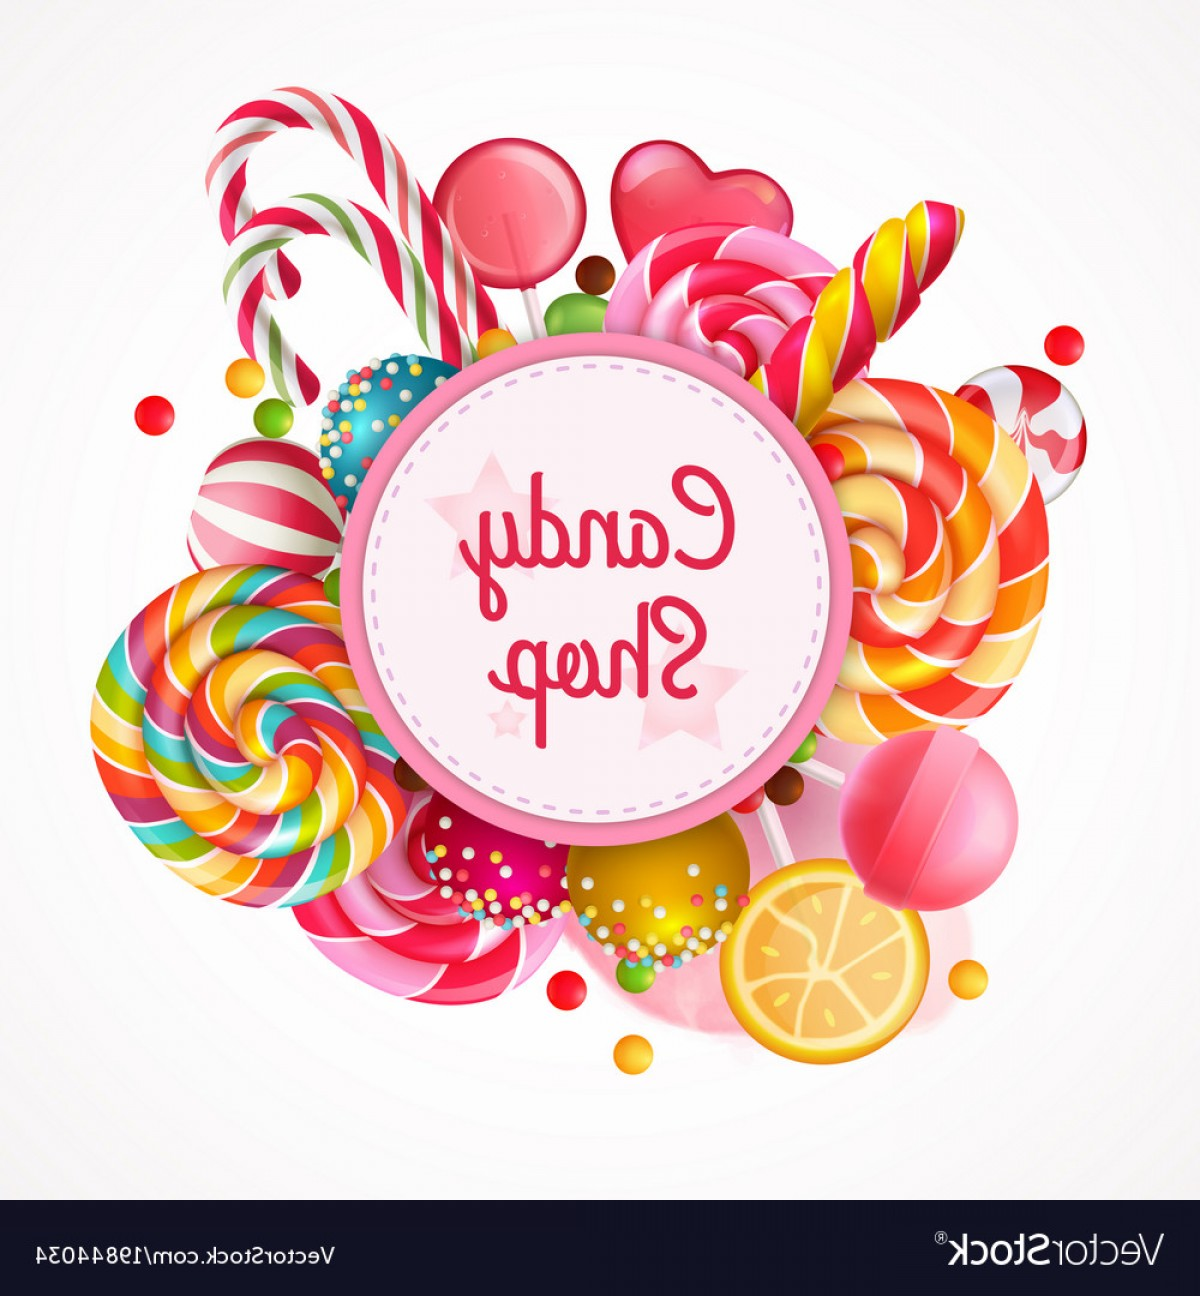 Candy Shop Vector: Candy Shop Round Frame Background Vector